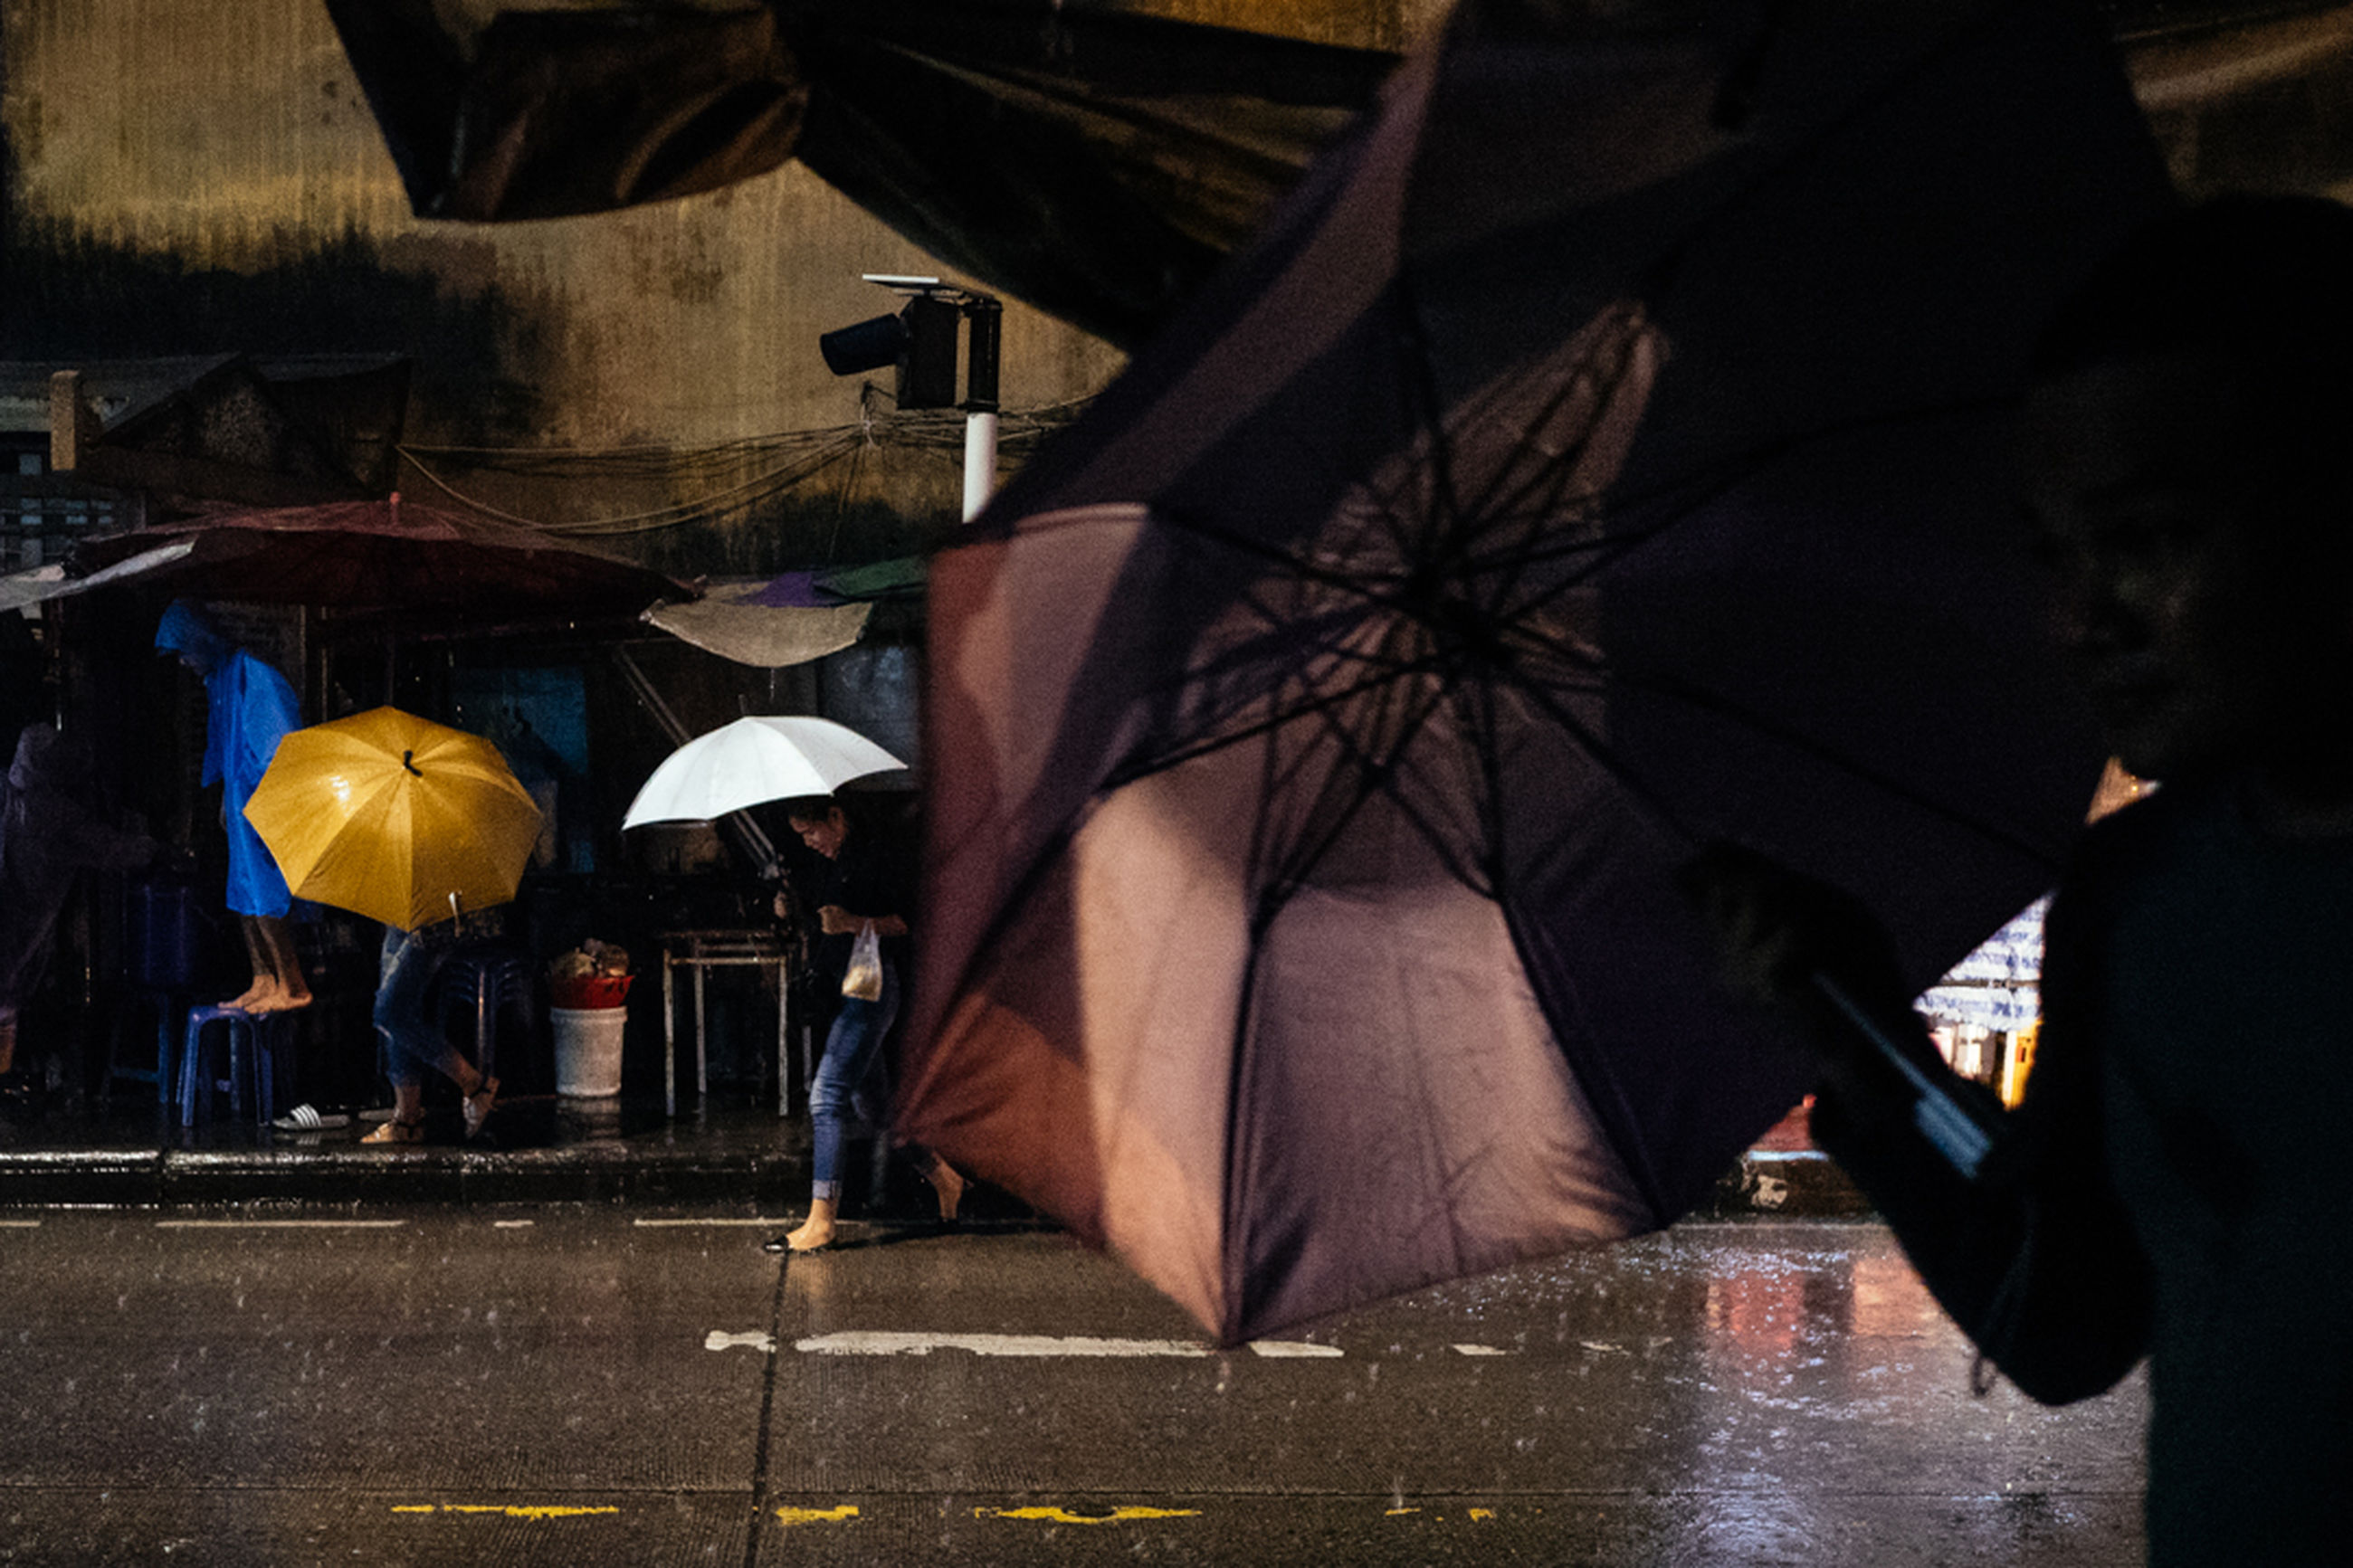 rain, wet, protection, rainy season, water, shelter, weather, below, real people, night, outdoors, under, men, low section, city, people